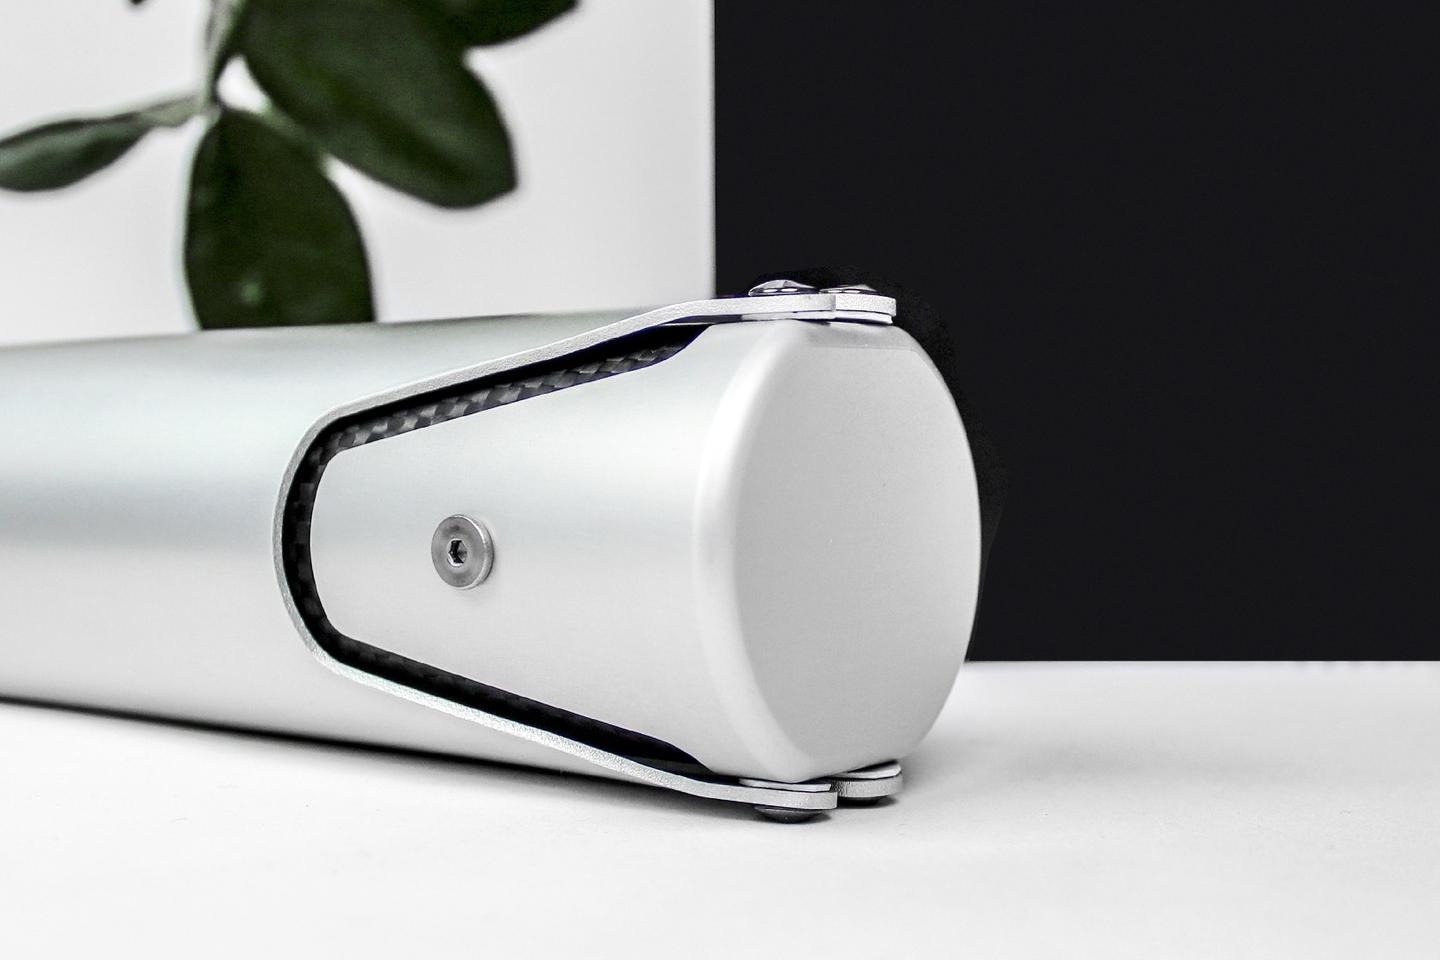 Sitpack makes its portable sitting tech lighter and more advanced with the new Zen